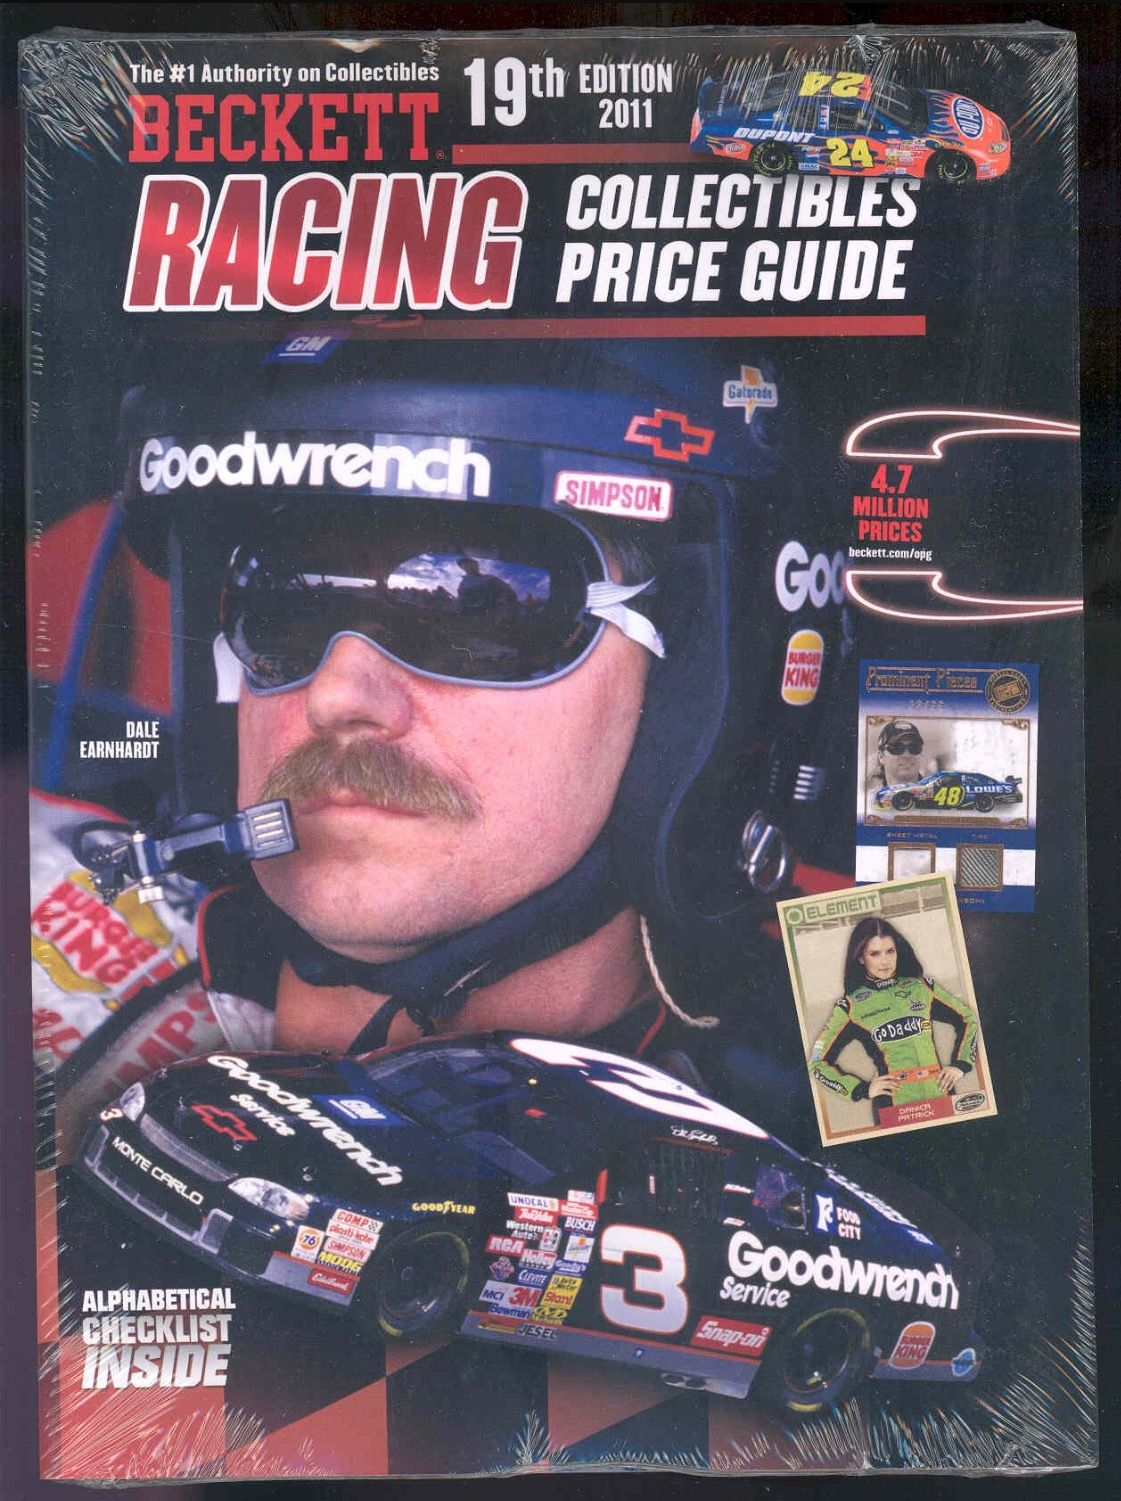 Beckett Racing Collectibles Price Guide, 19th edition, March 2011